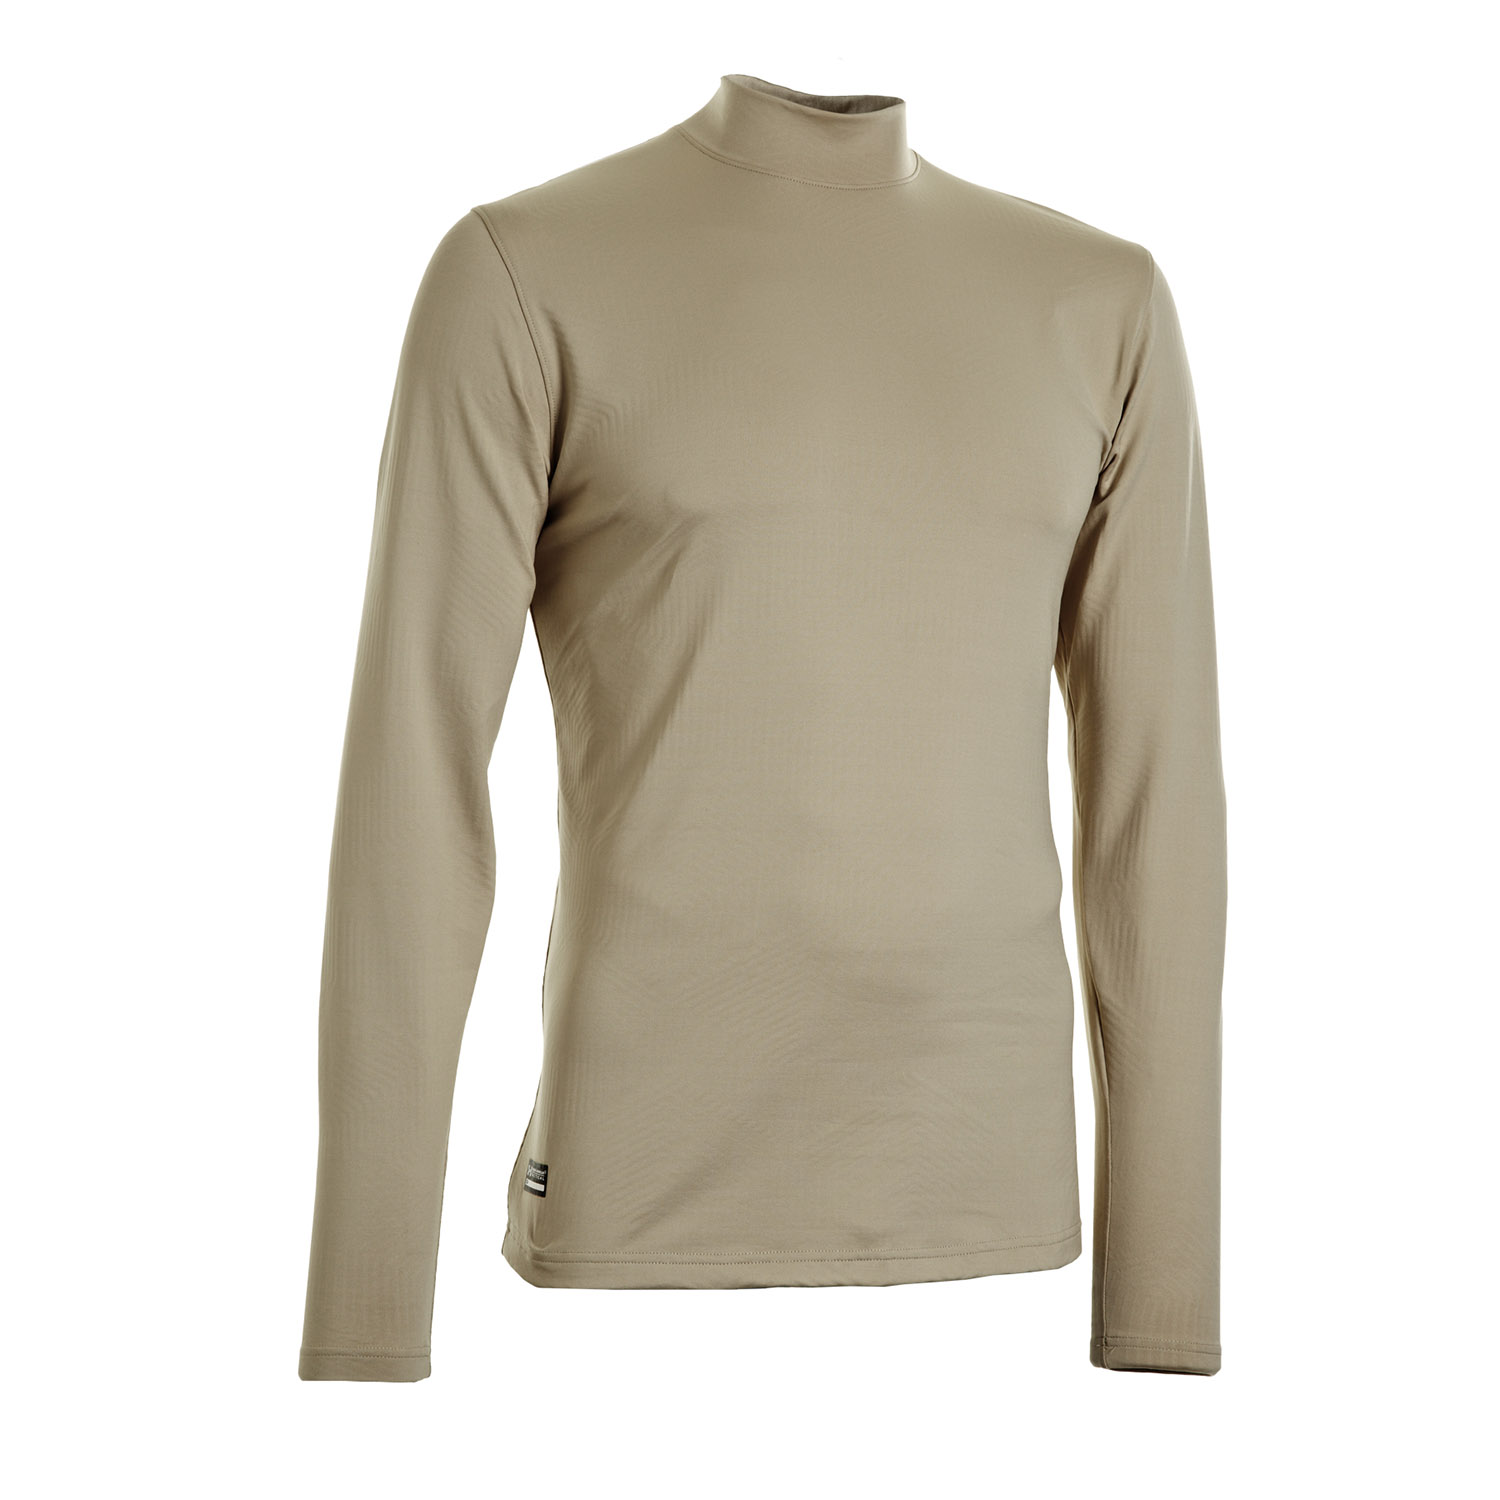 under armour coldgear long sleeve mock turtleneck